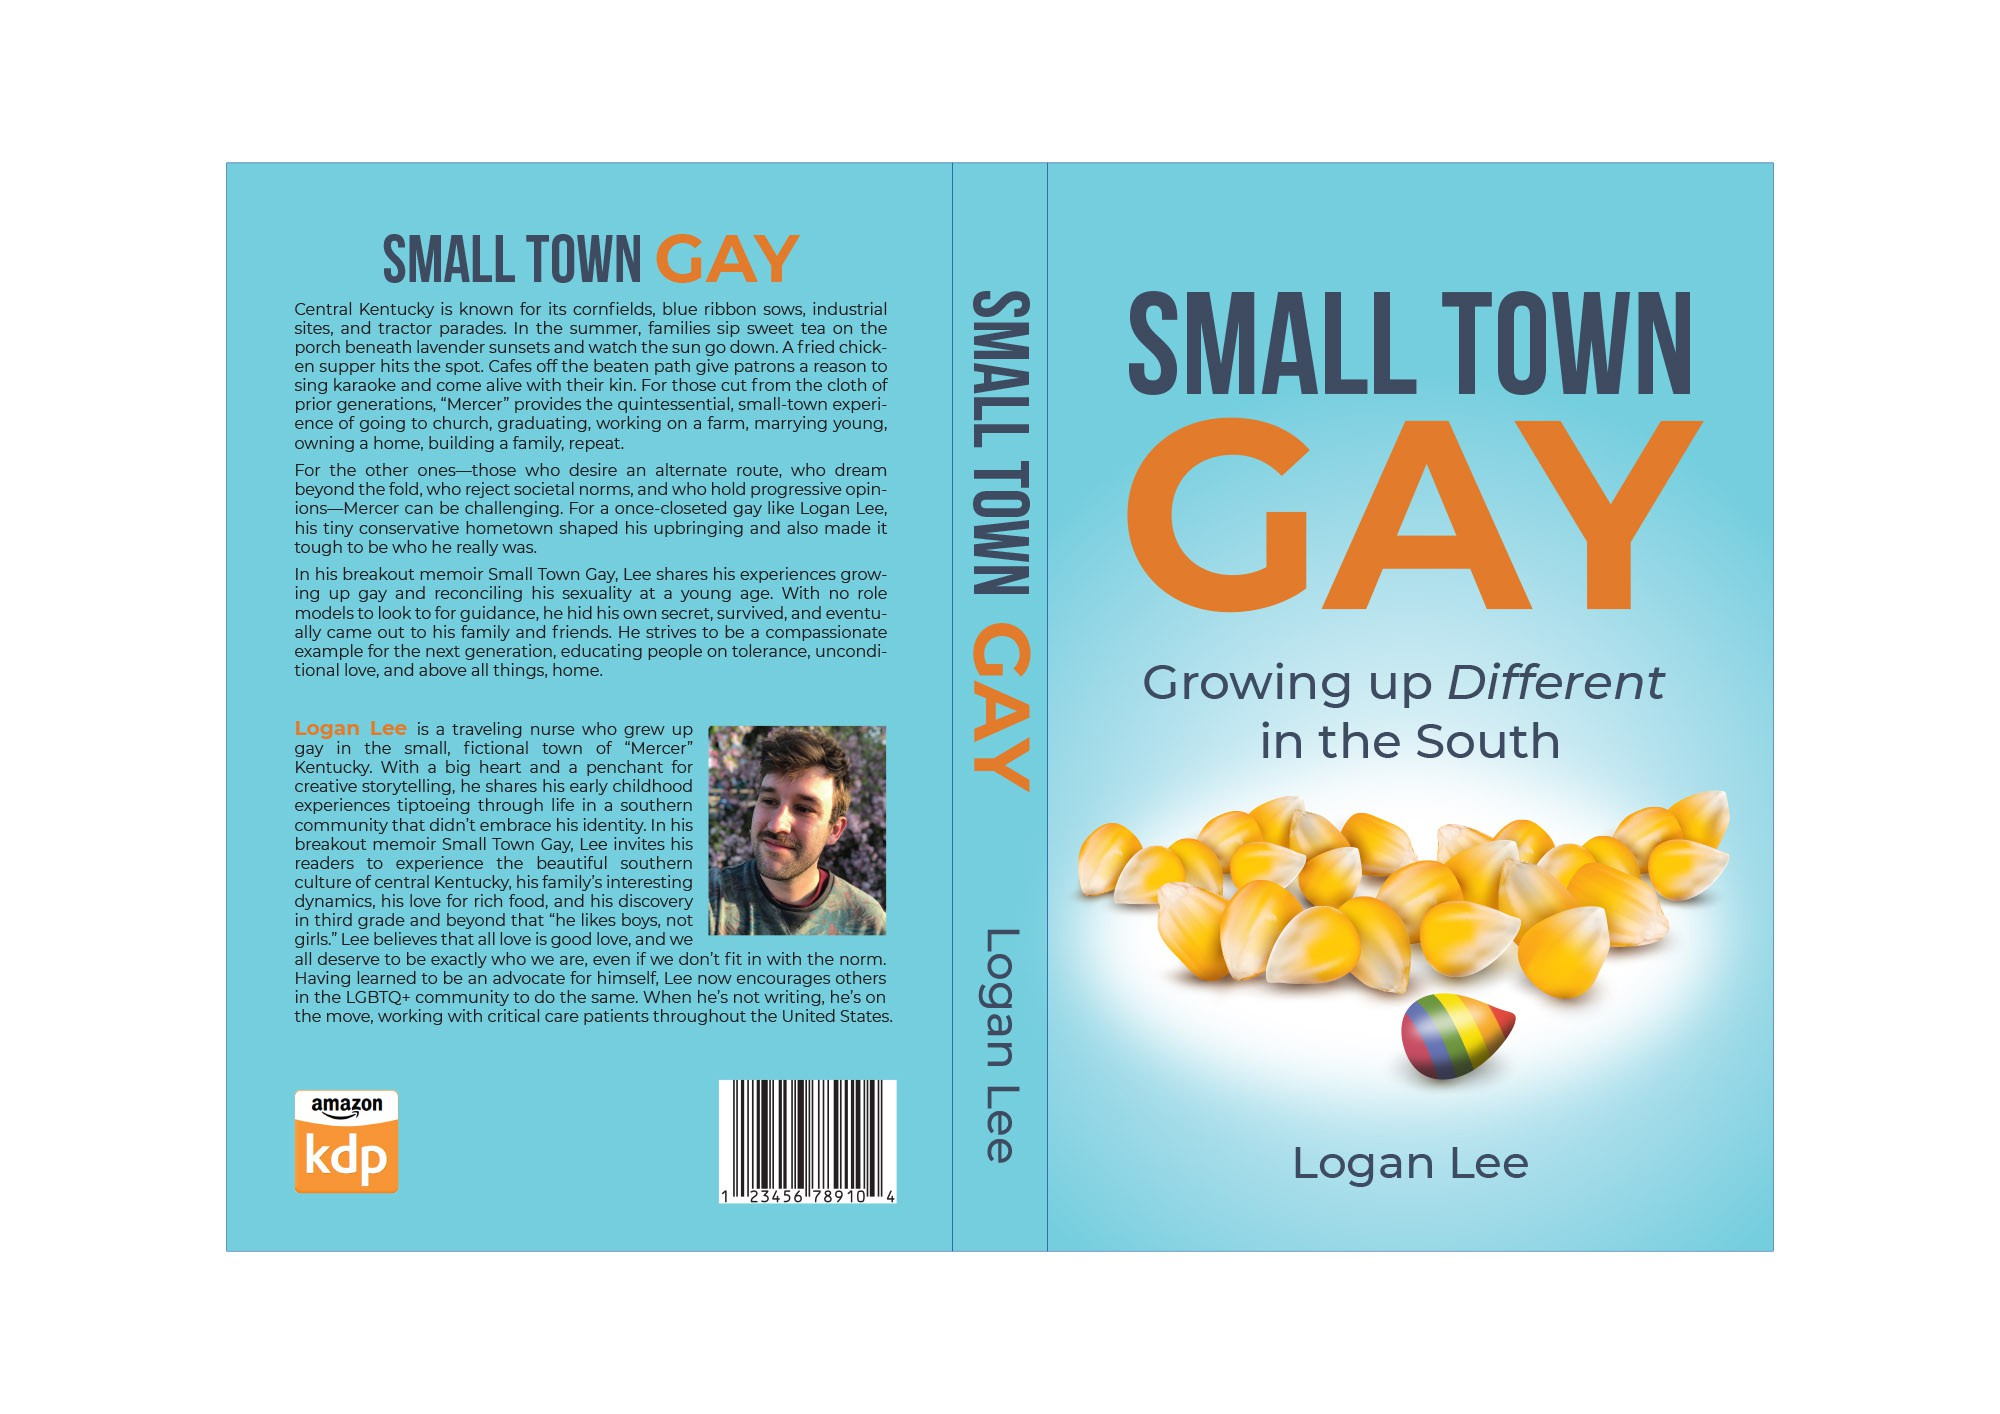 Humorous memoir about growing up gay in the southern US